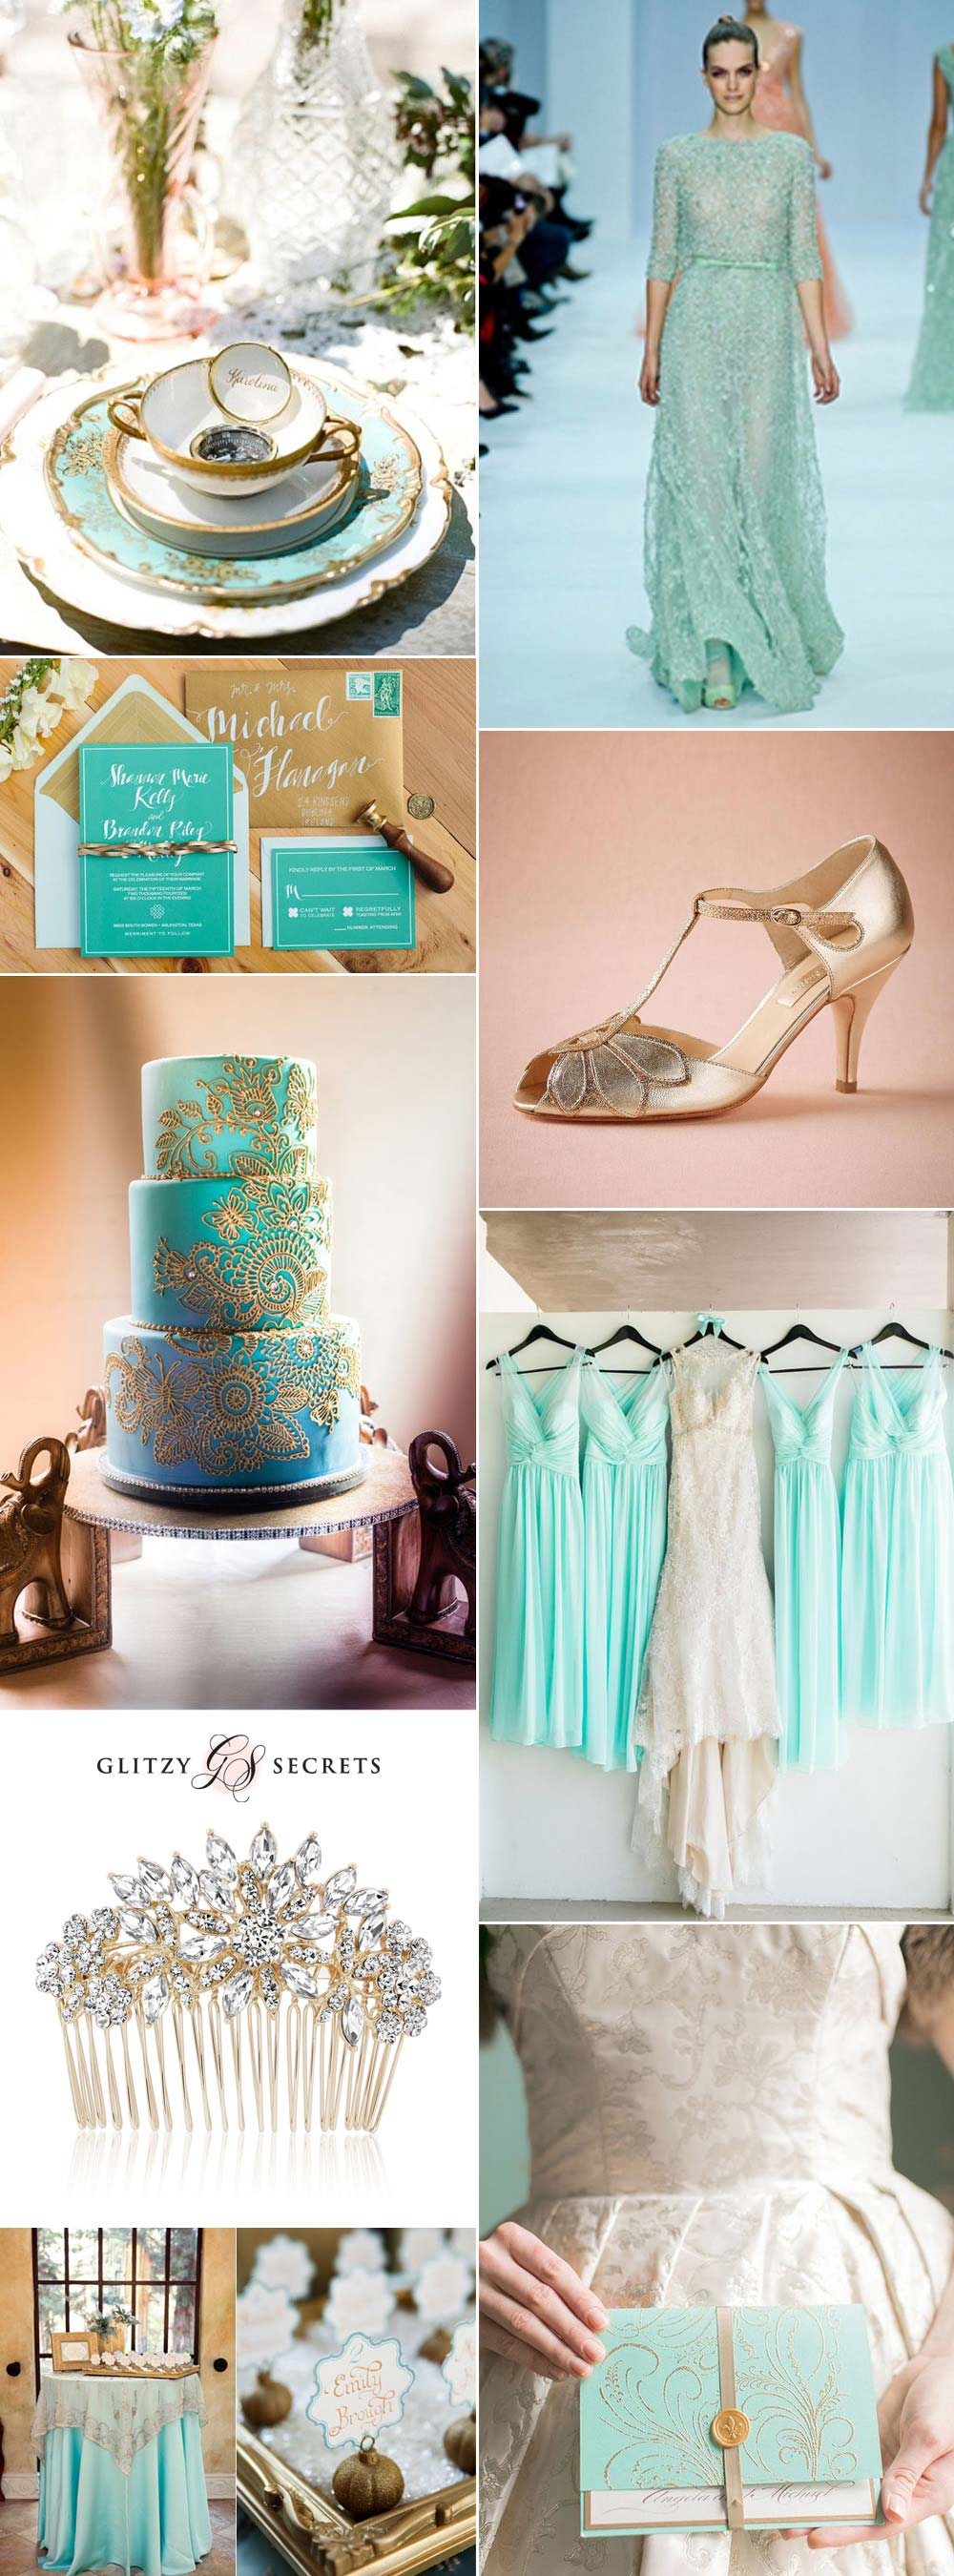 fabulous aqua and gold wedding ideas